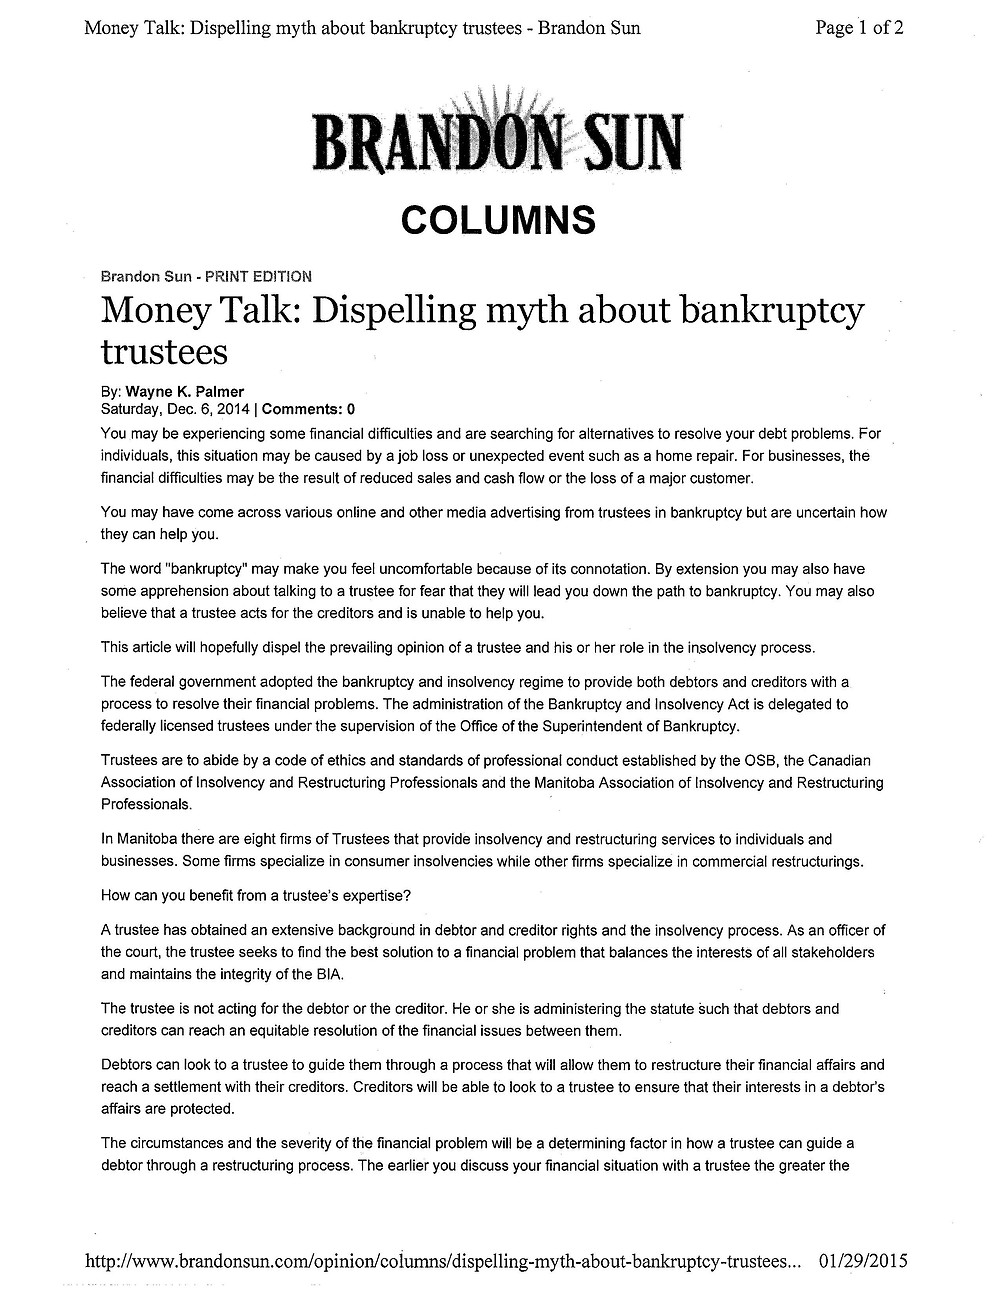 Disspelling Myth Article_Page_1.jpg